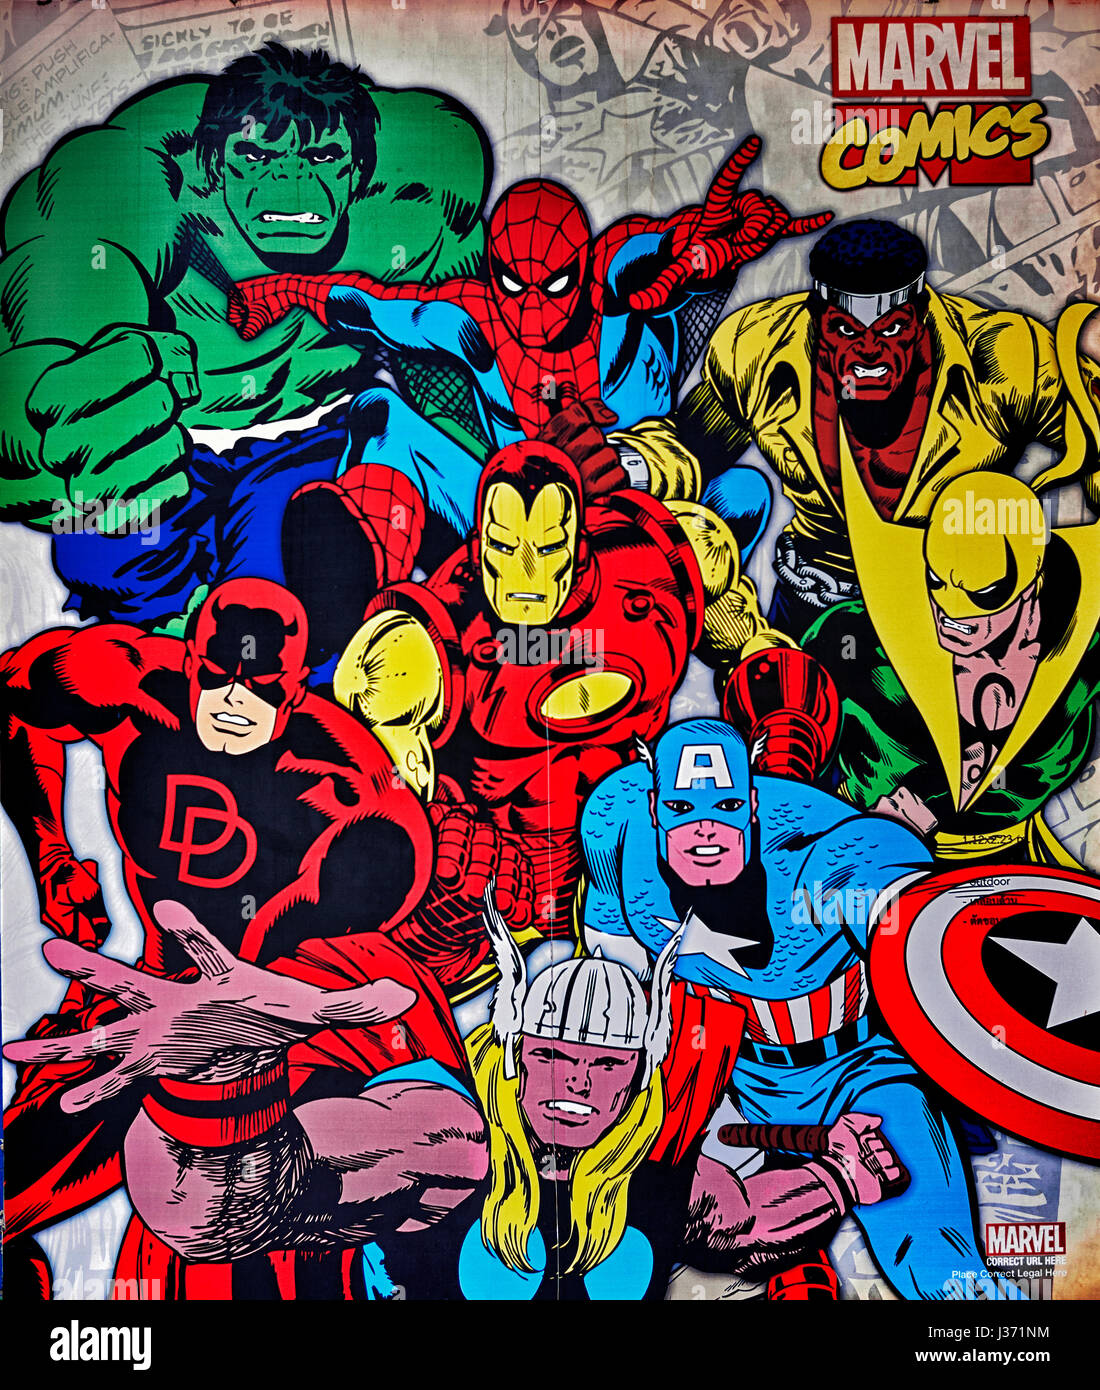 poster-marvel-comics-superheroes-J371NM.